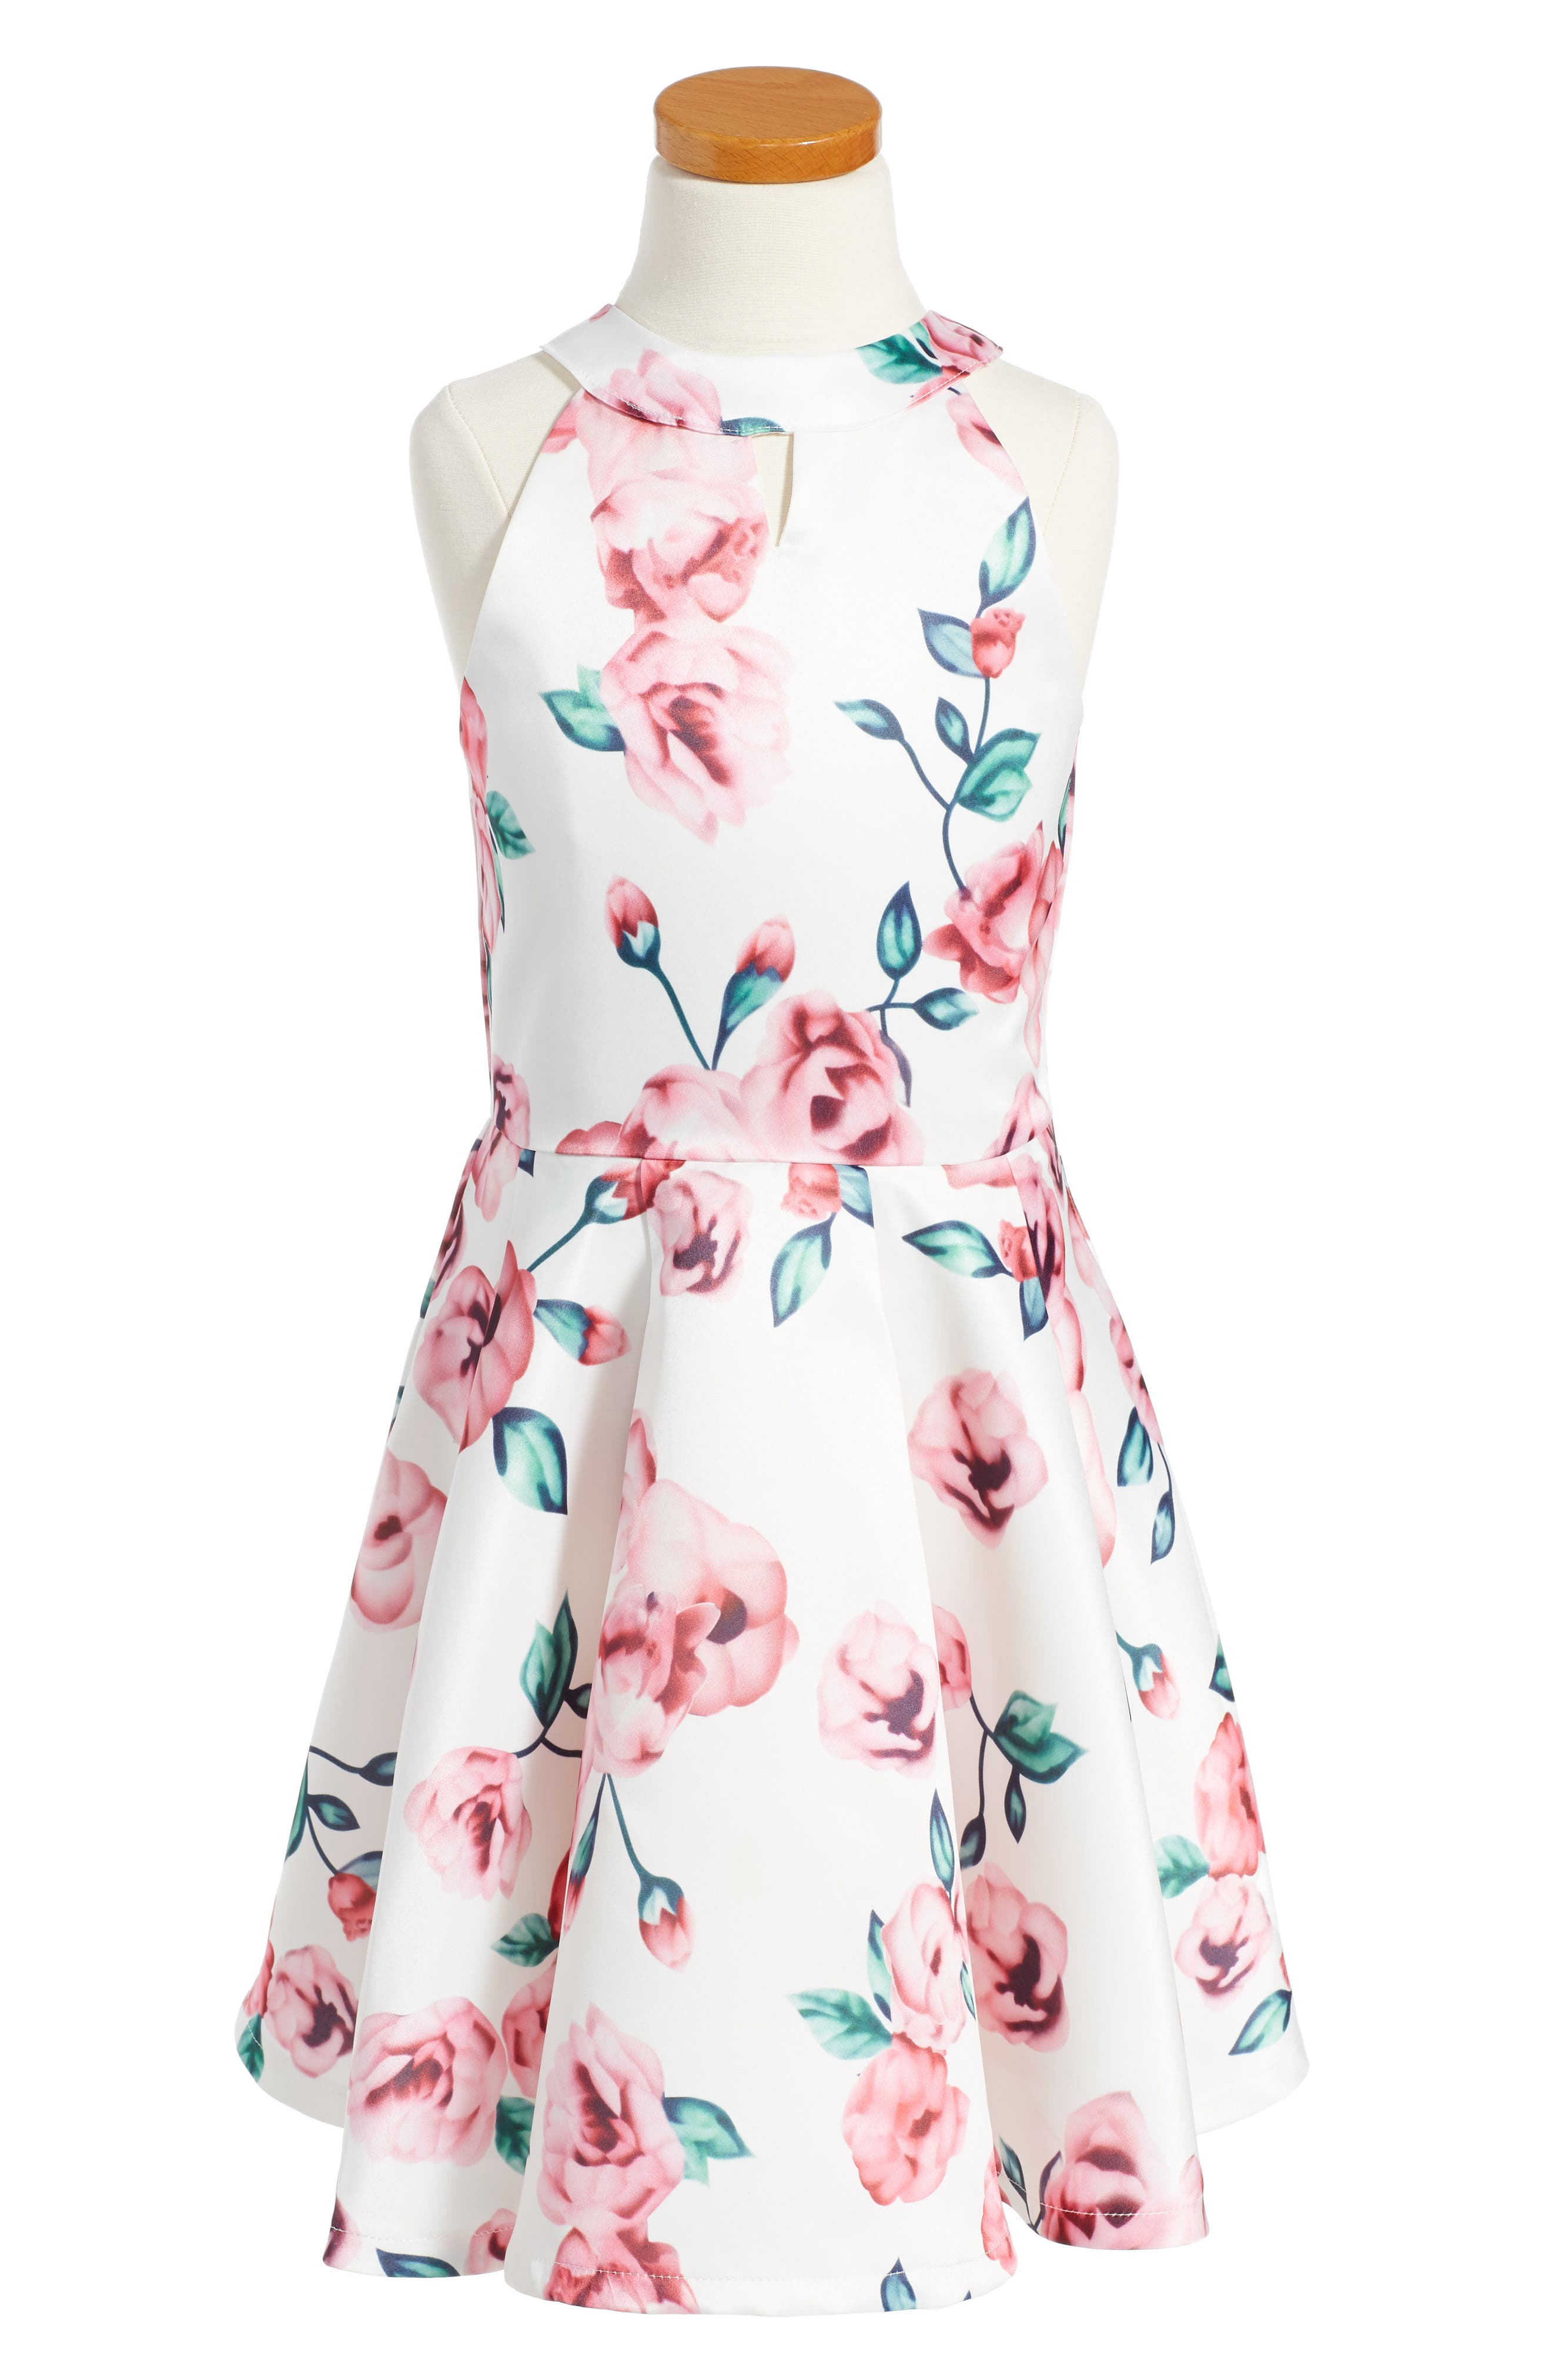 Floral Fit & Flare Dress,                         Main,                         color, White/ Pink